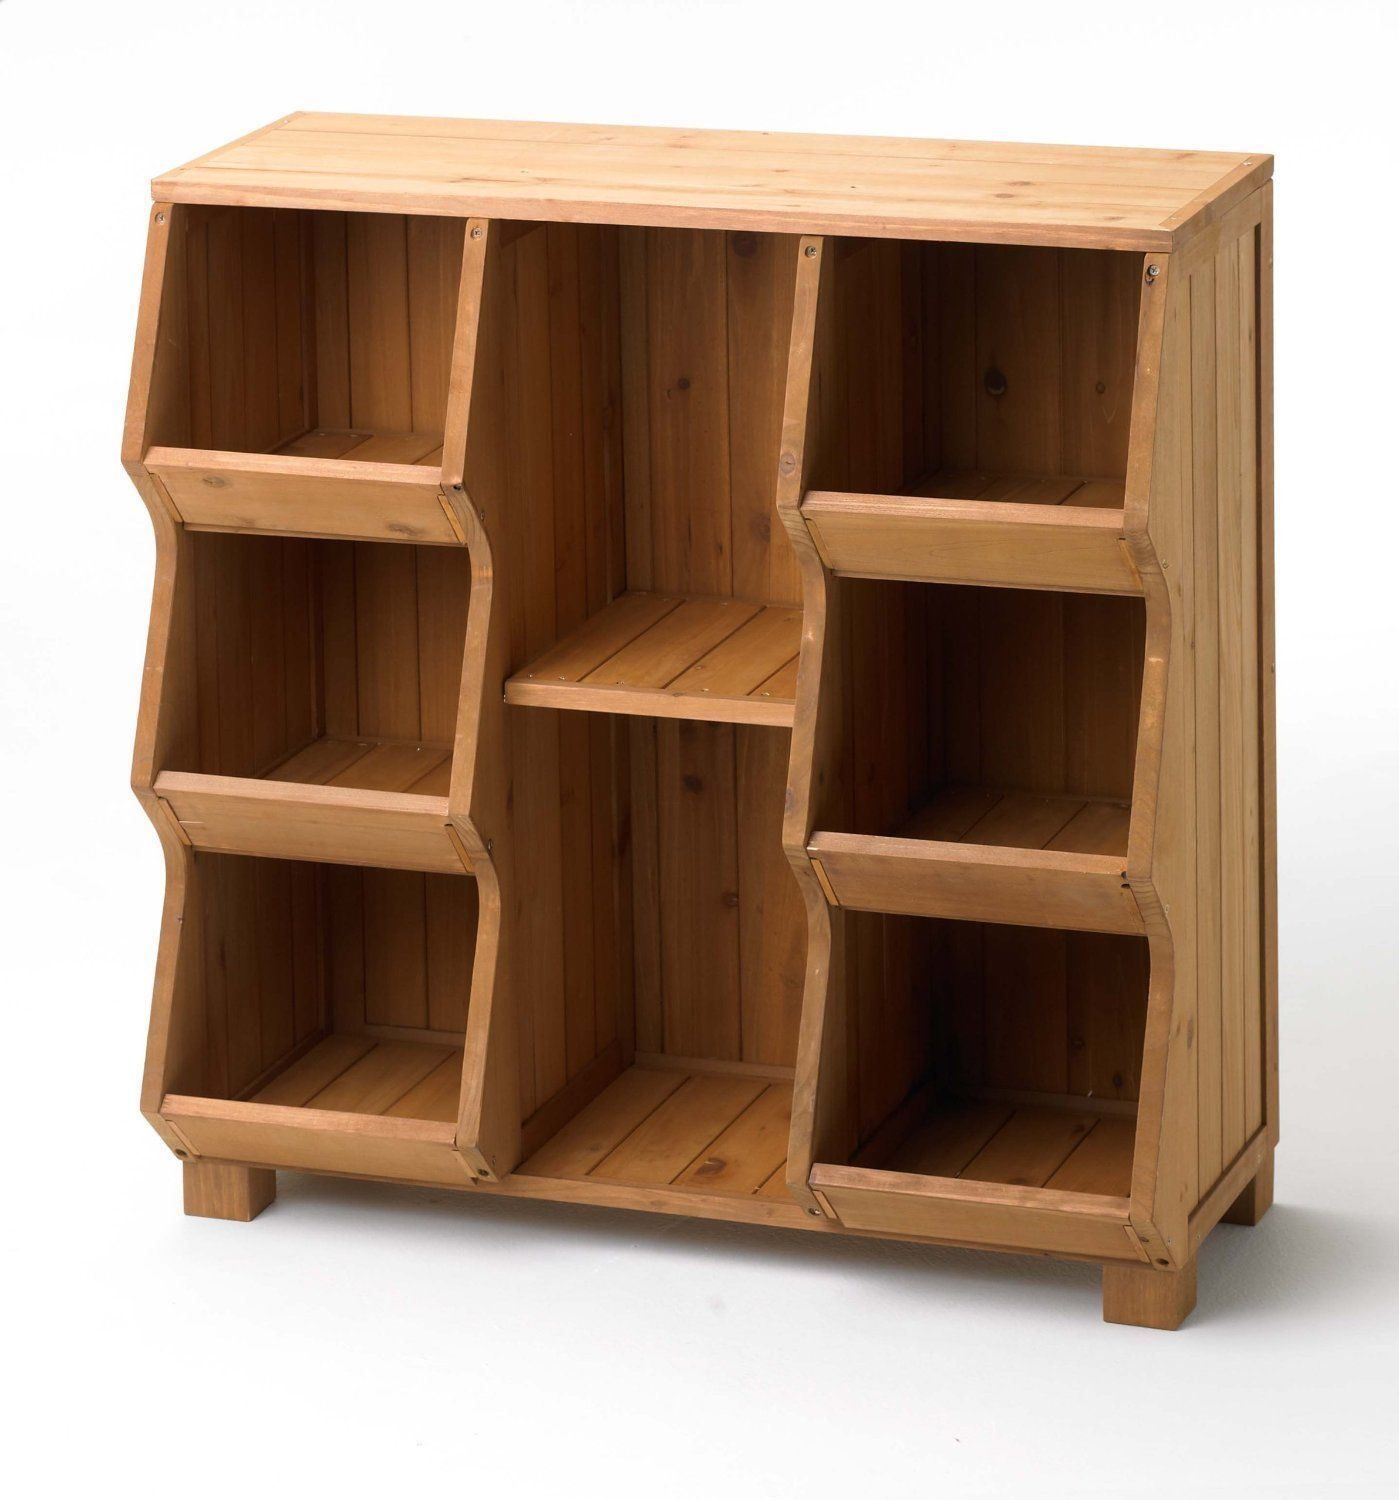 Wood Storage Cabinet With Shelves ~ Wood storage cabinet single tall stackable home shelf toy